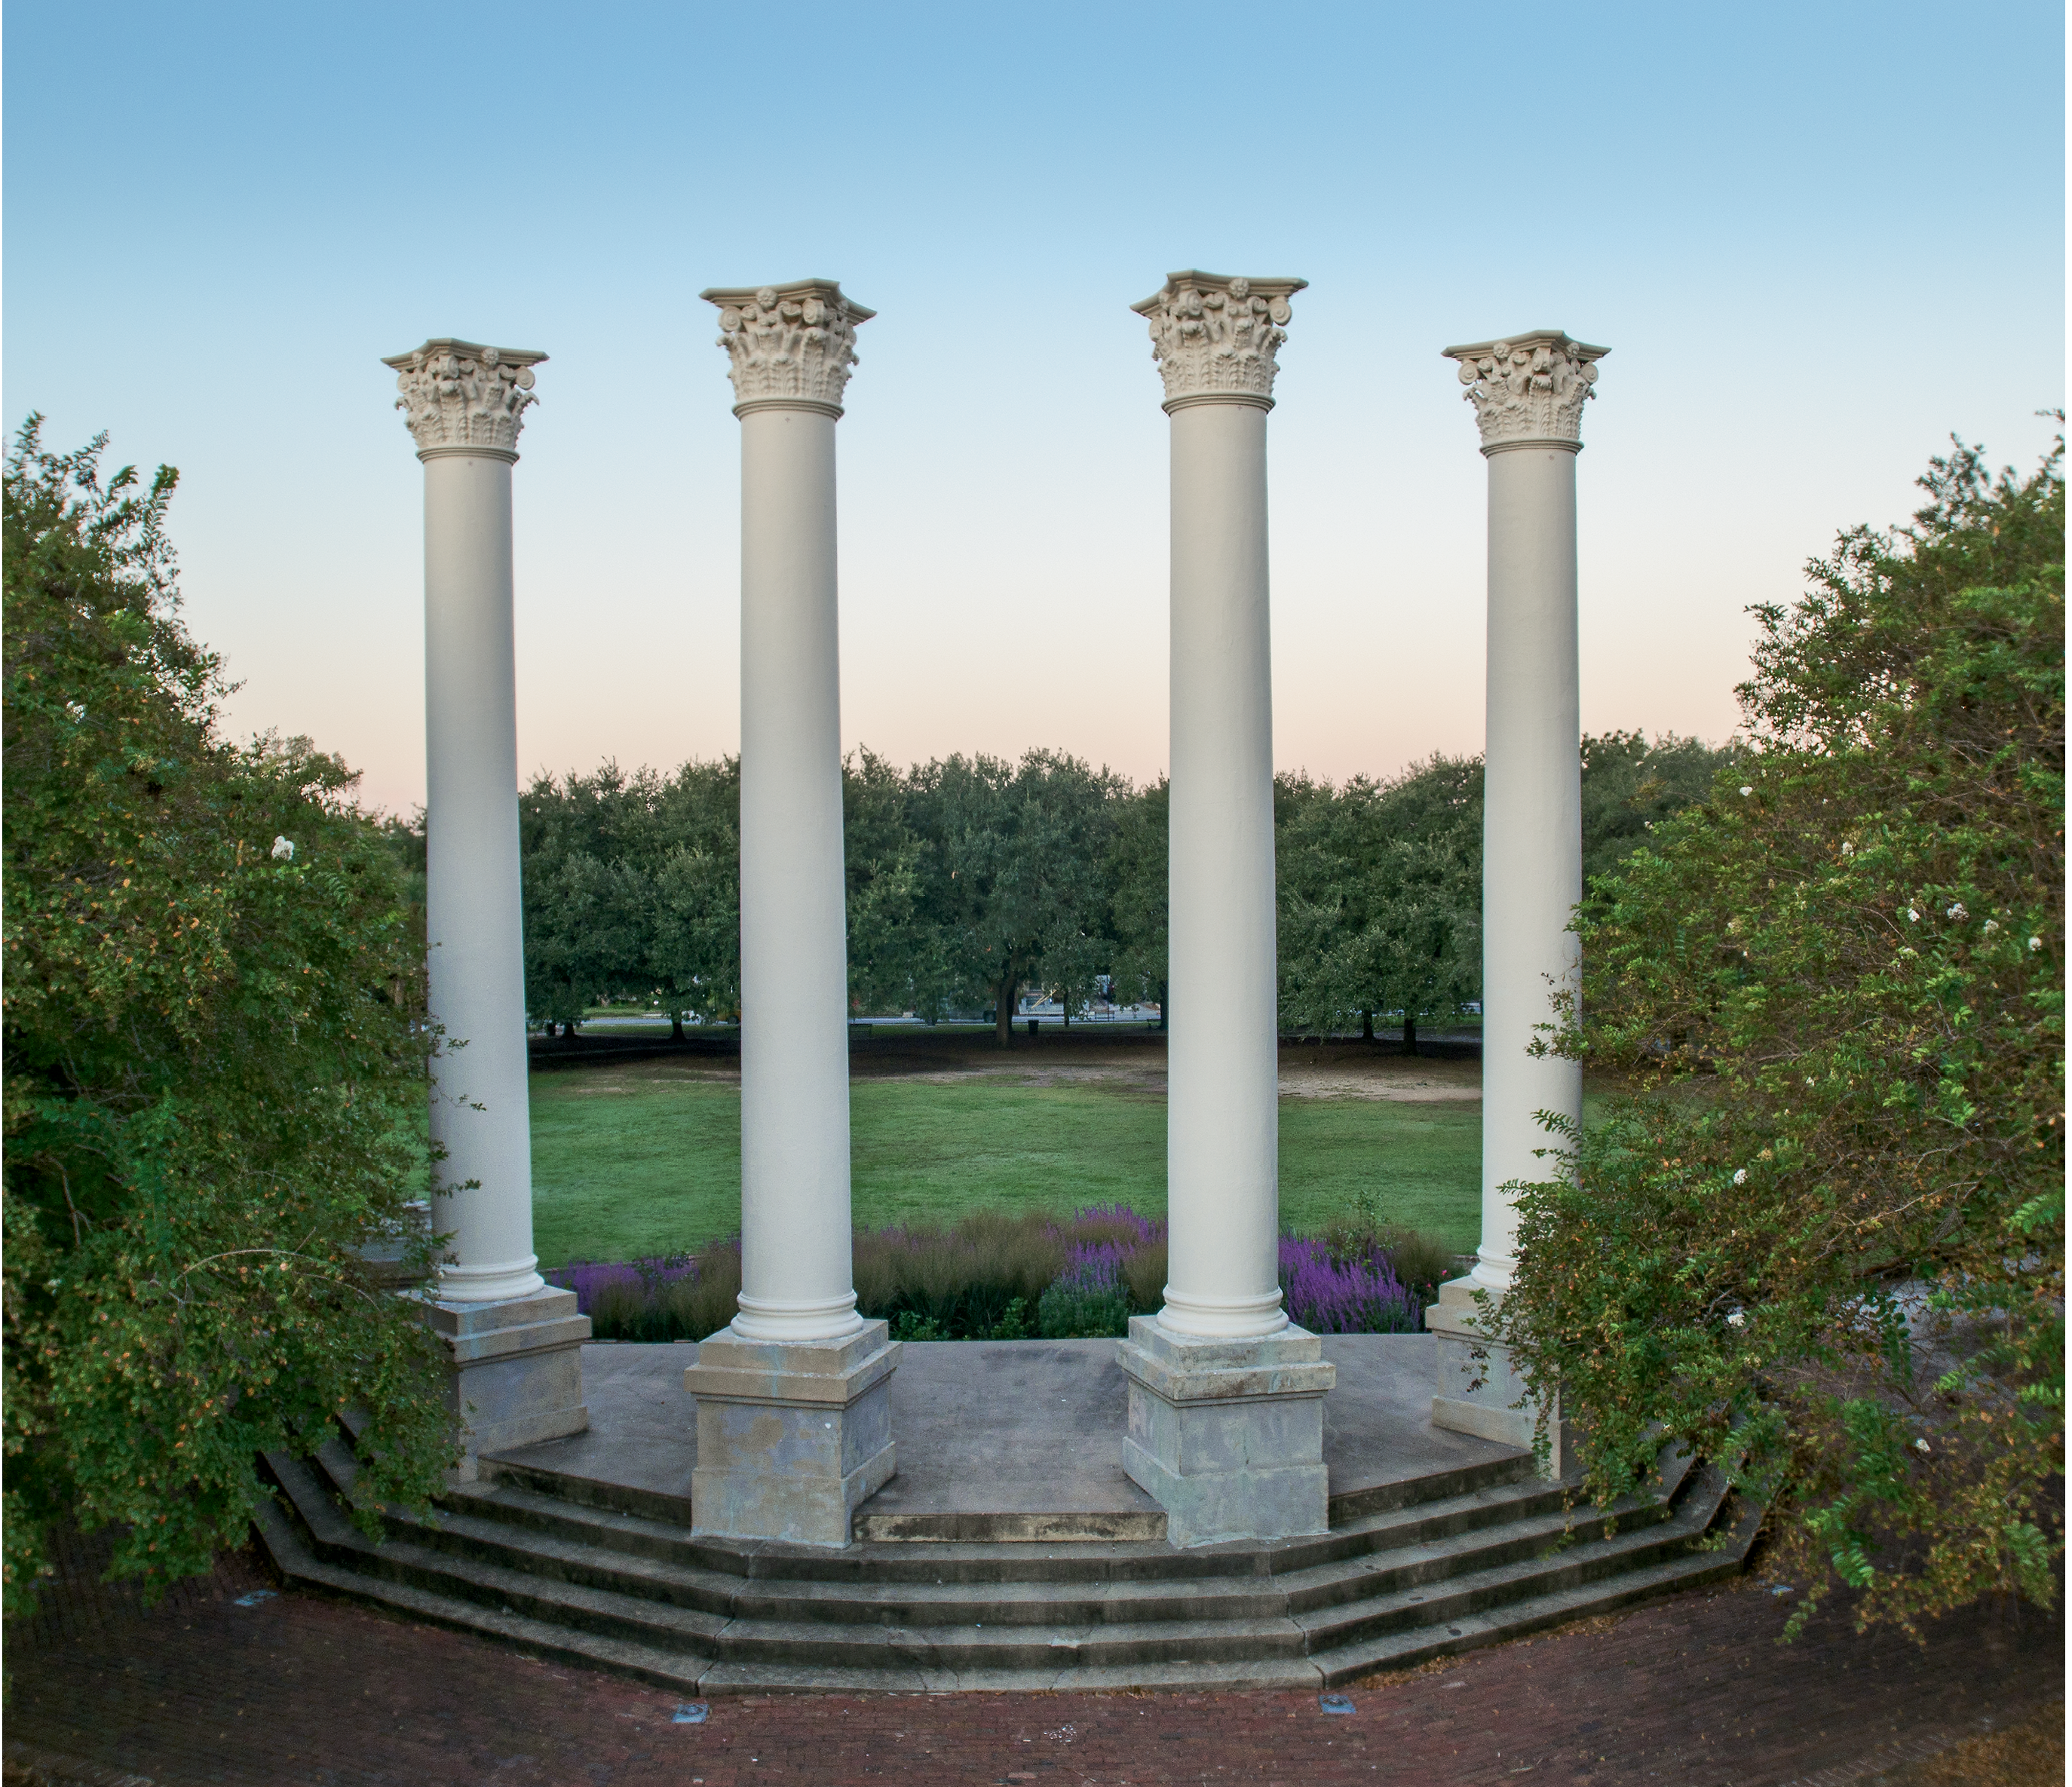 After the museum moved in 1980 to its new facility on Meeting Street, the old building caught fire and burned to the ground, leaving only its majestic Corinthian columns, today standing in Cannon Park.